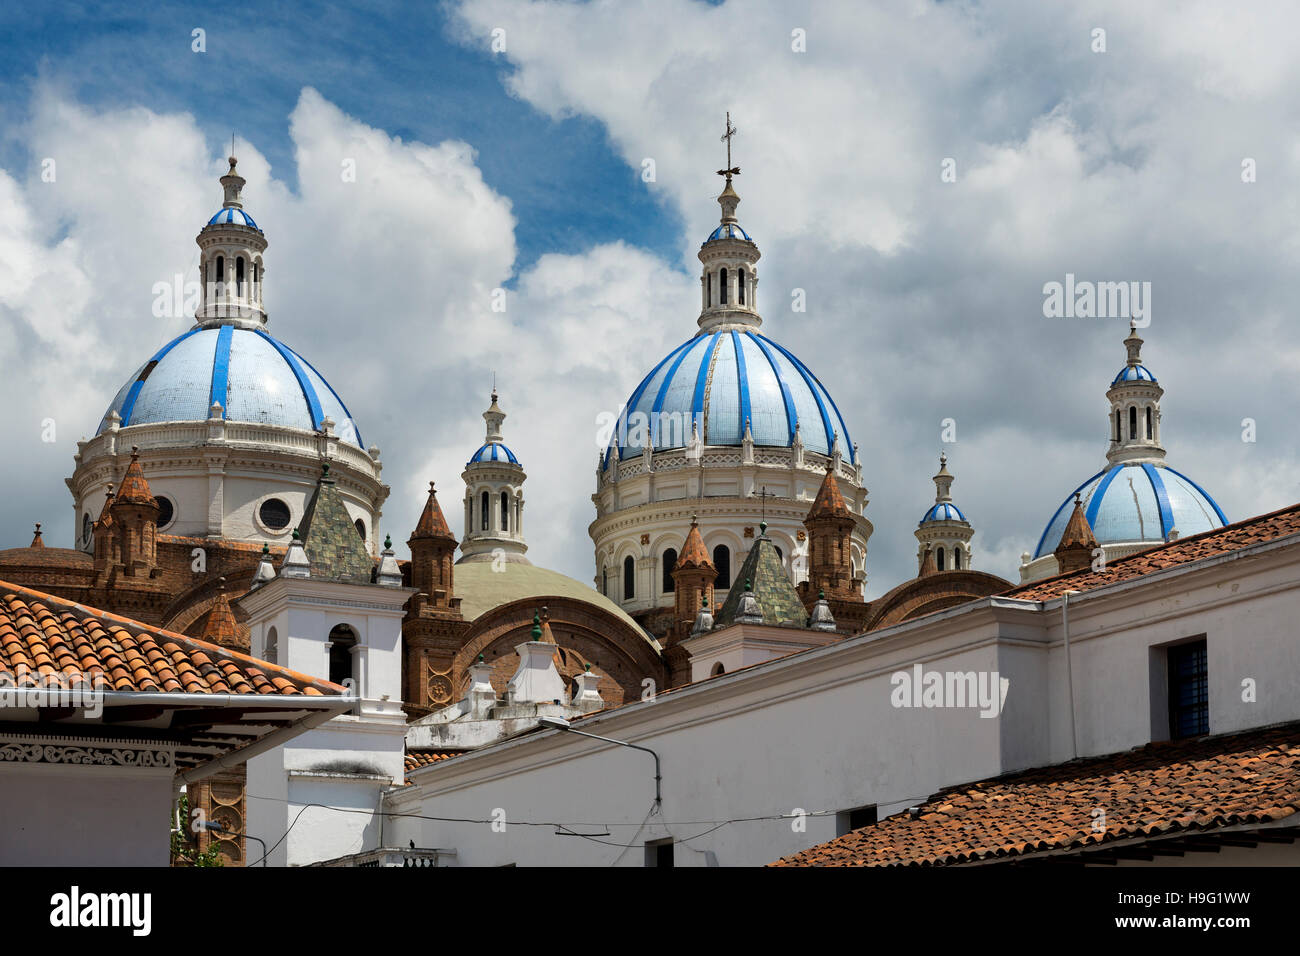 Detail of the blue domes of the Cathedral in Cuenca, Ecuador, South America - Stock Image